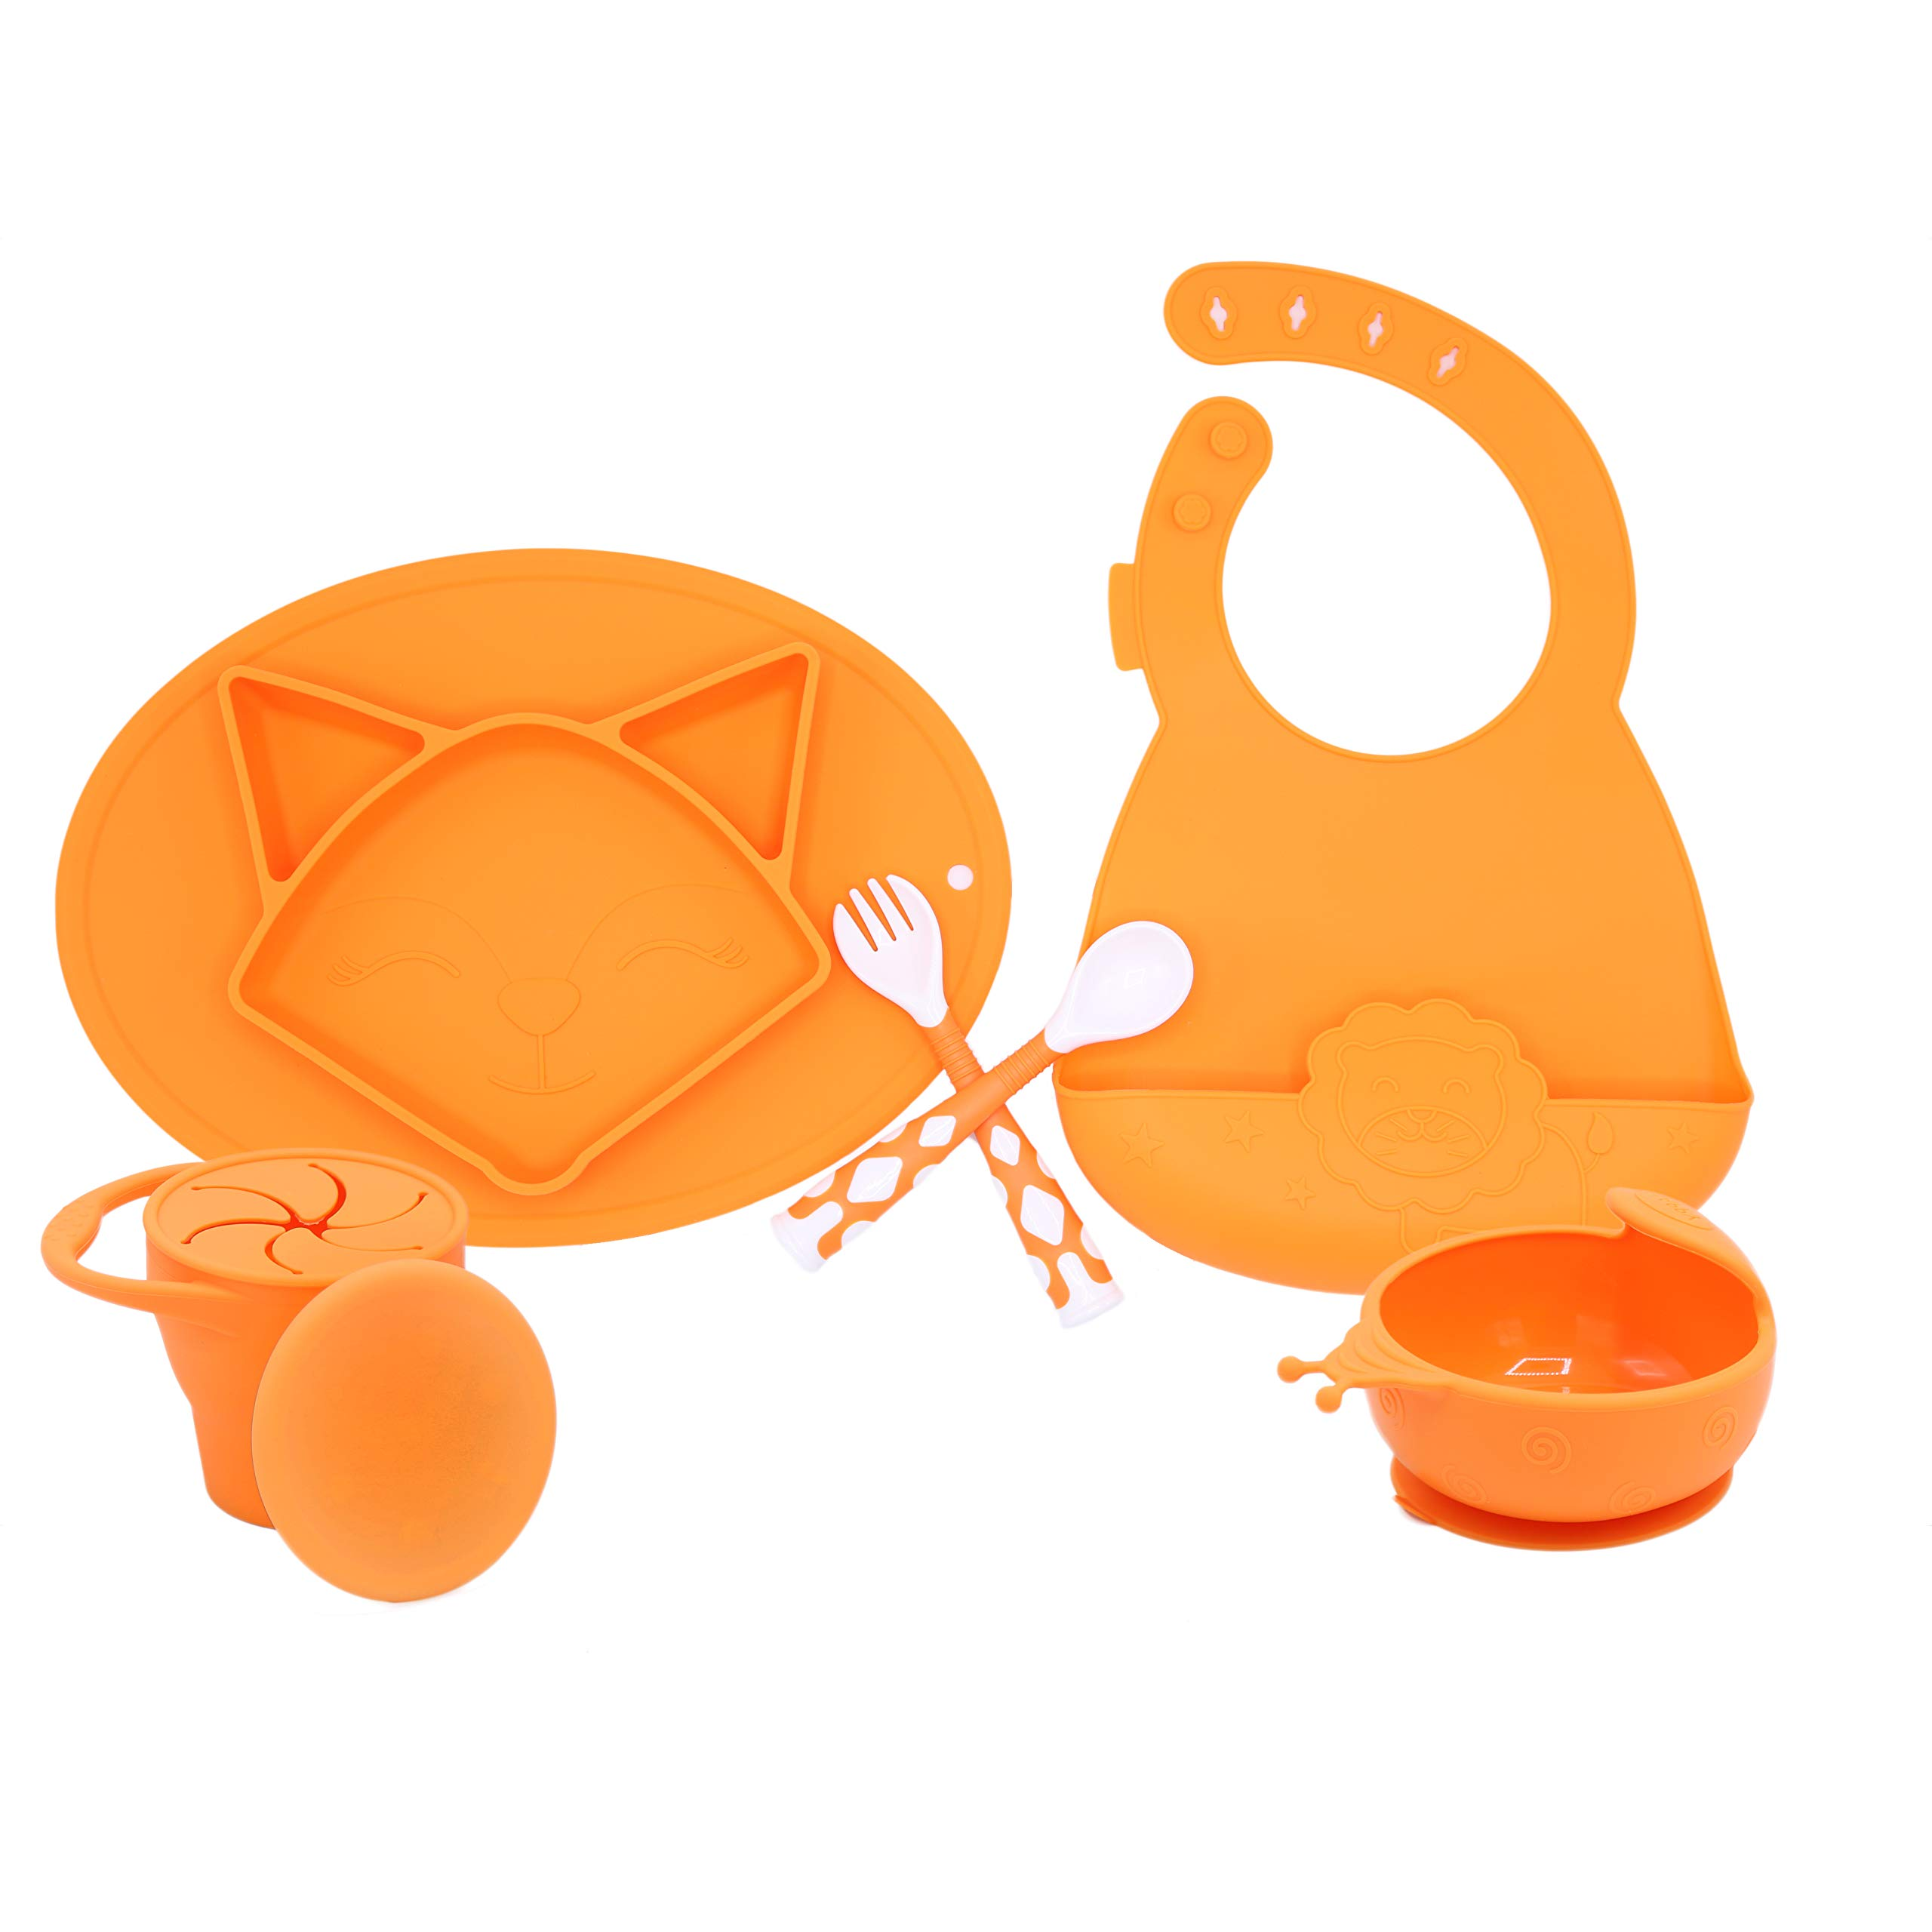 5 PC Silicone Dinnerware Baby Place Mat Cup Flatware Bowl Bib Fork and Spoon Anti Slip Easy to Clean Kids Placemat Fun Animal Shapes and Colors 5 Piece Set Orange (Fox) by AG